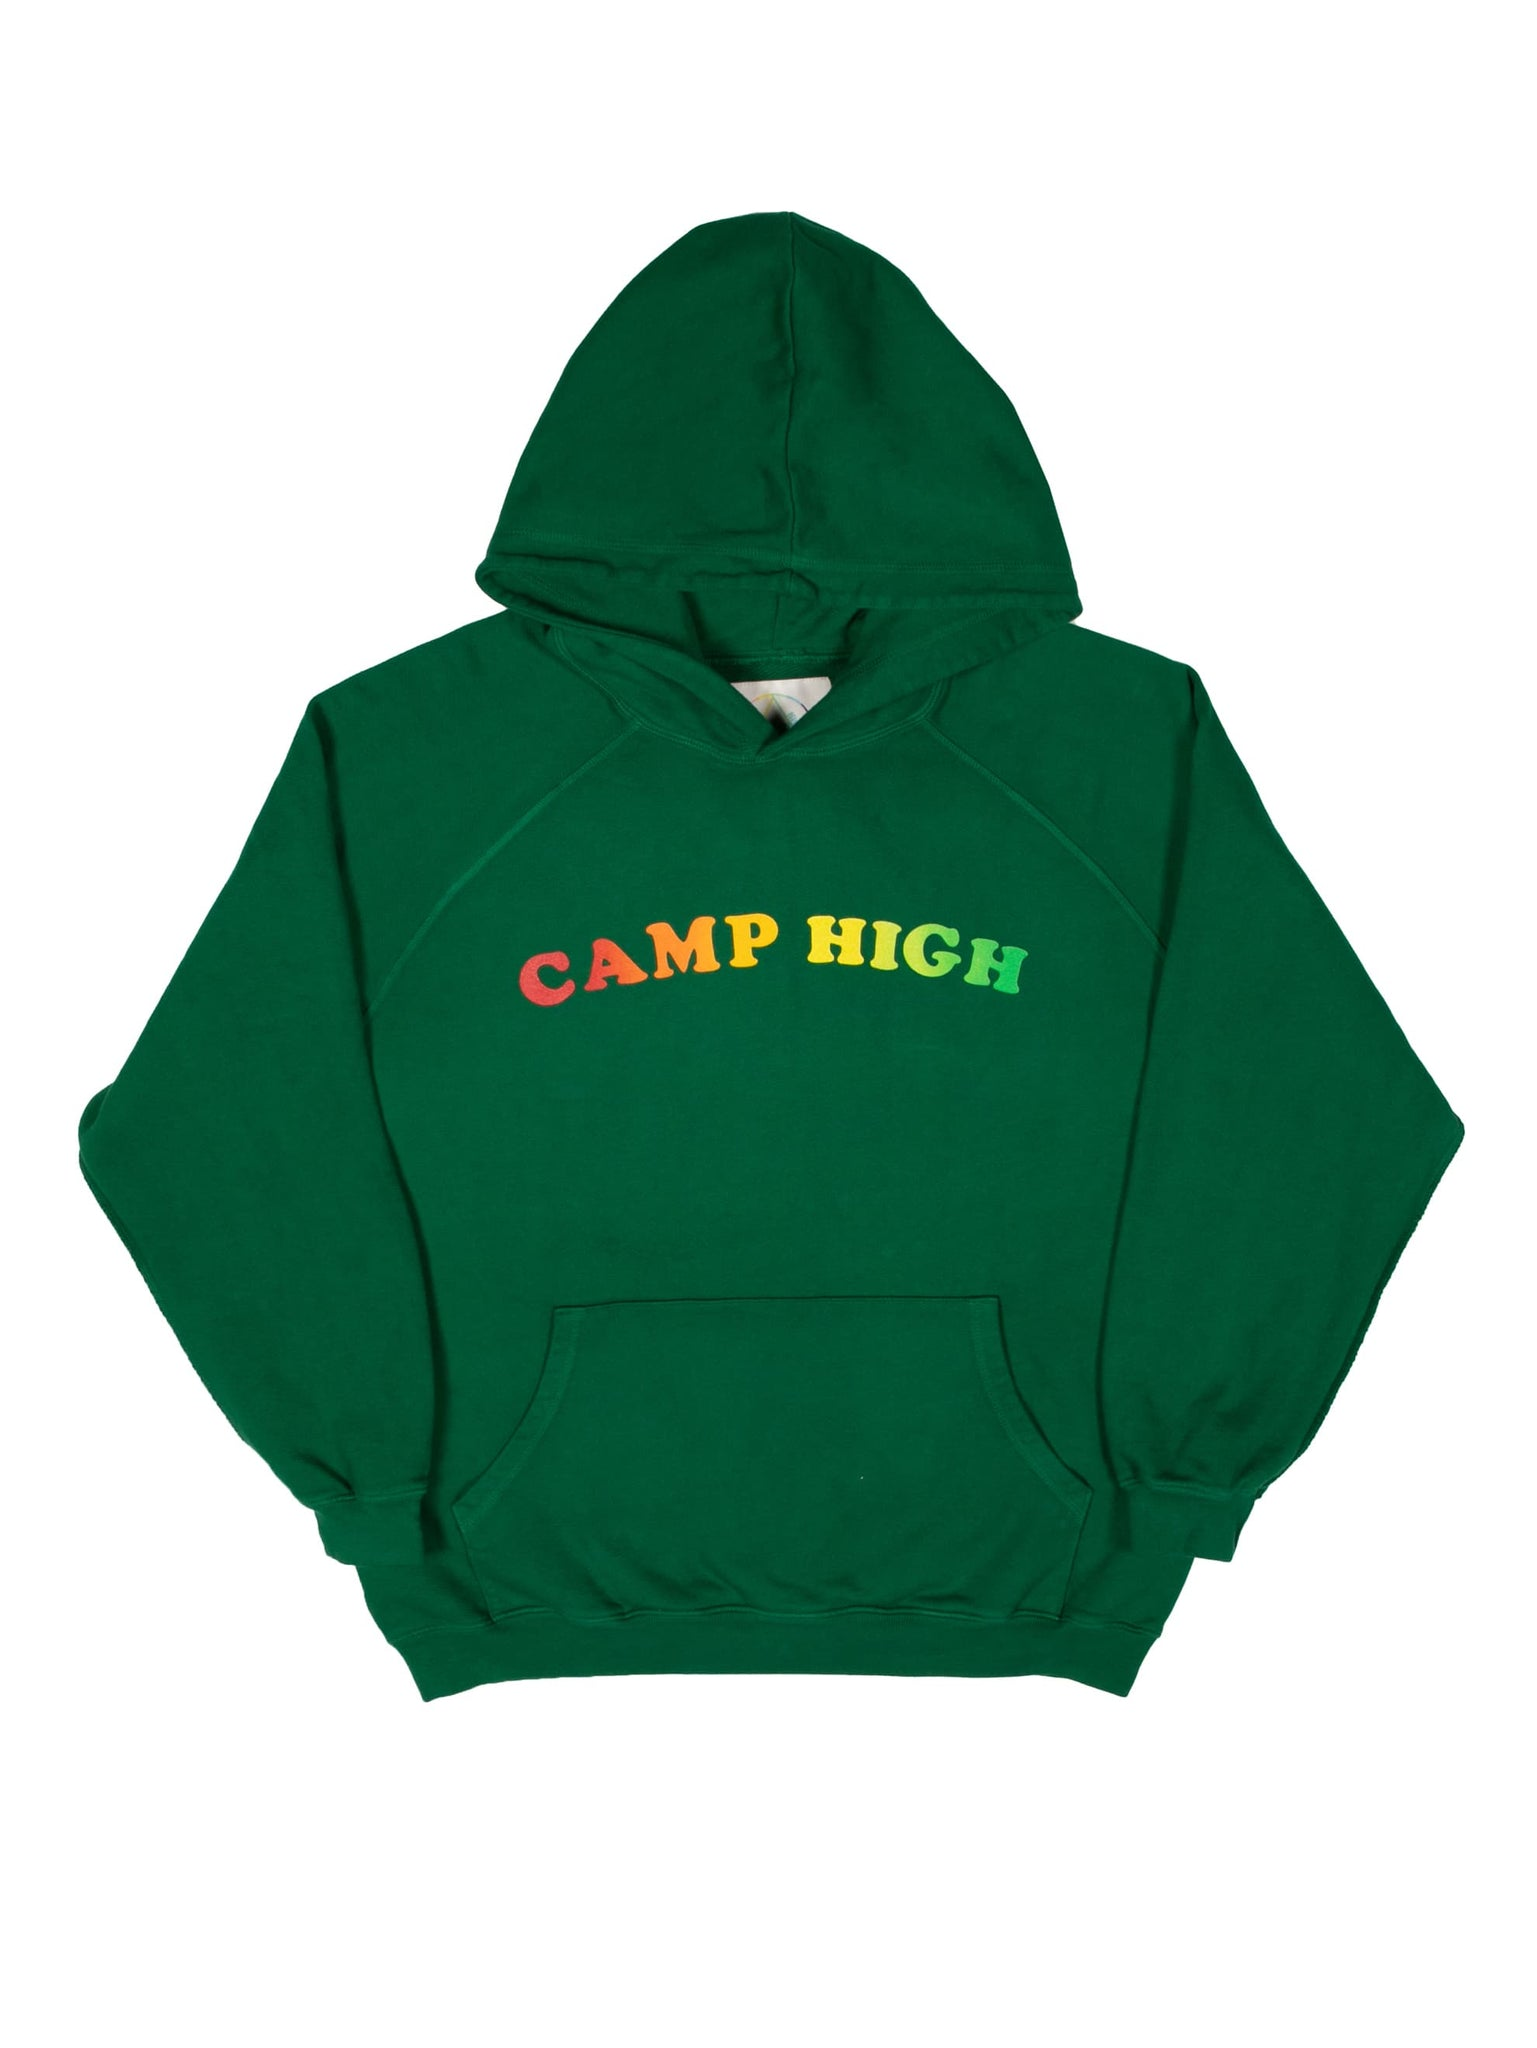 Camp High Counselor Hoody